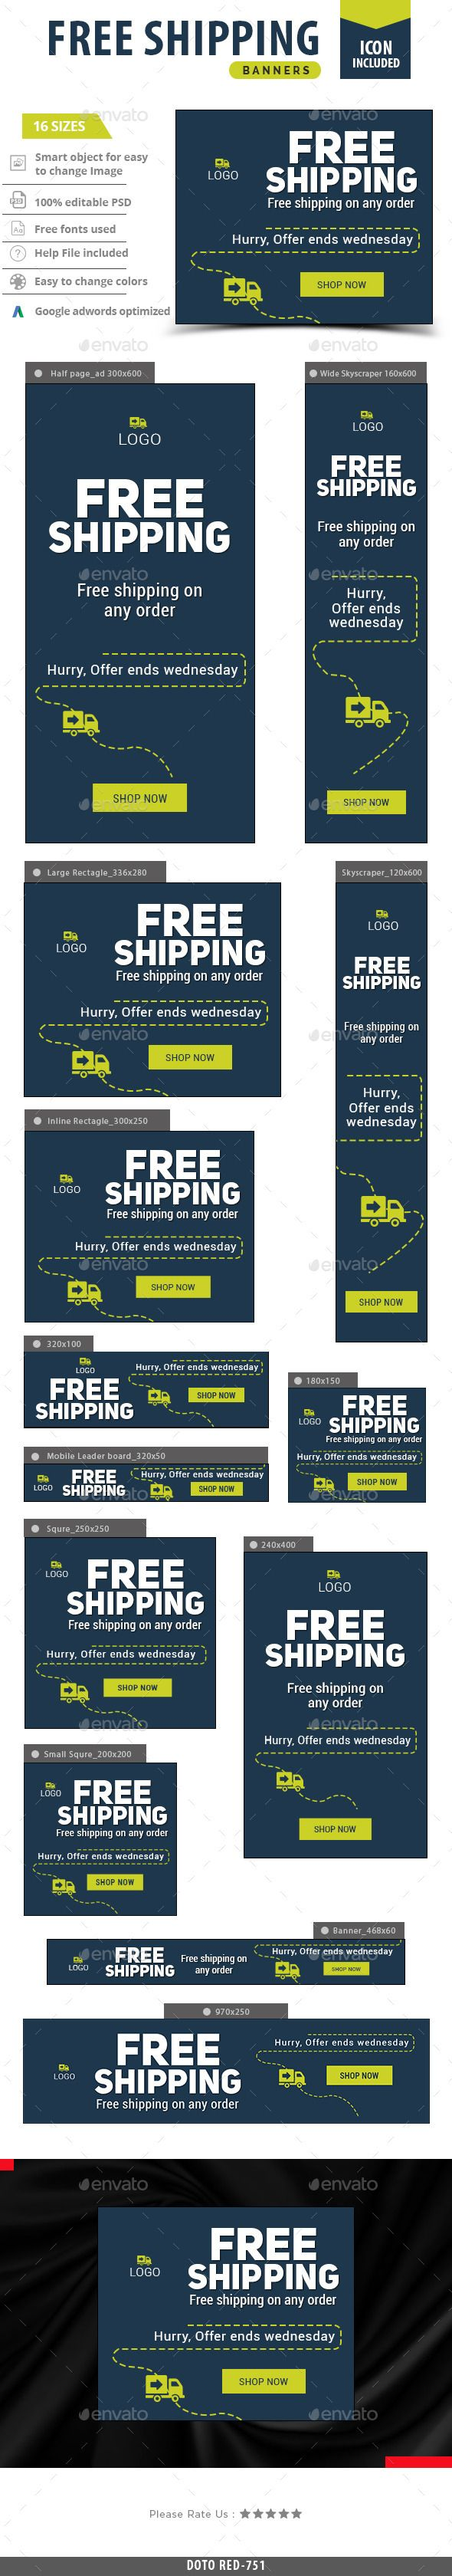 Free Shipping Banners — Photoshop PSD #marketing #banners • Available here → https://graphicriver.net/item/free-shipping-banners/13256552?ref=pxcr